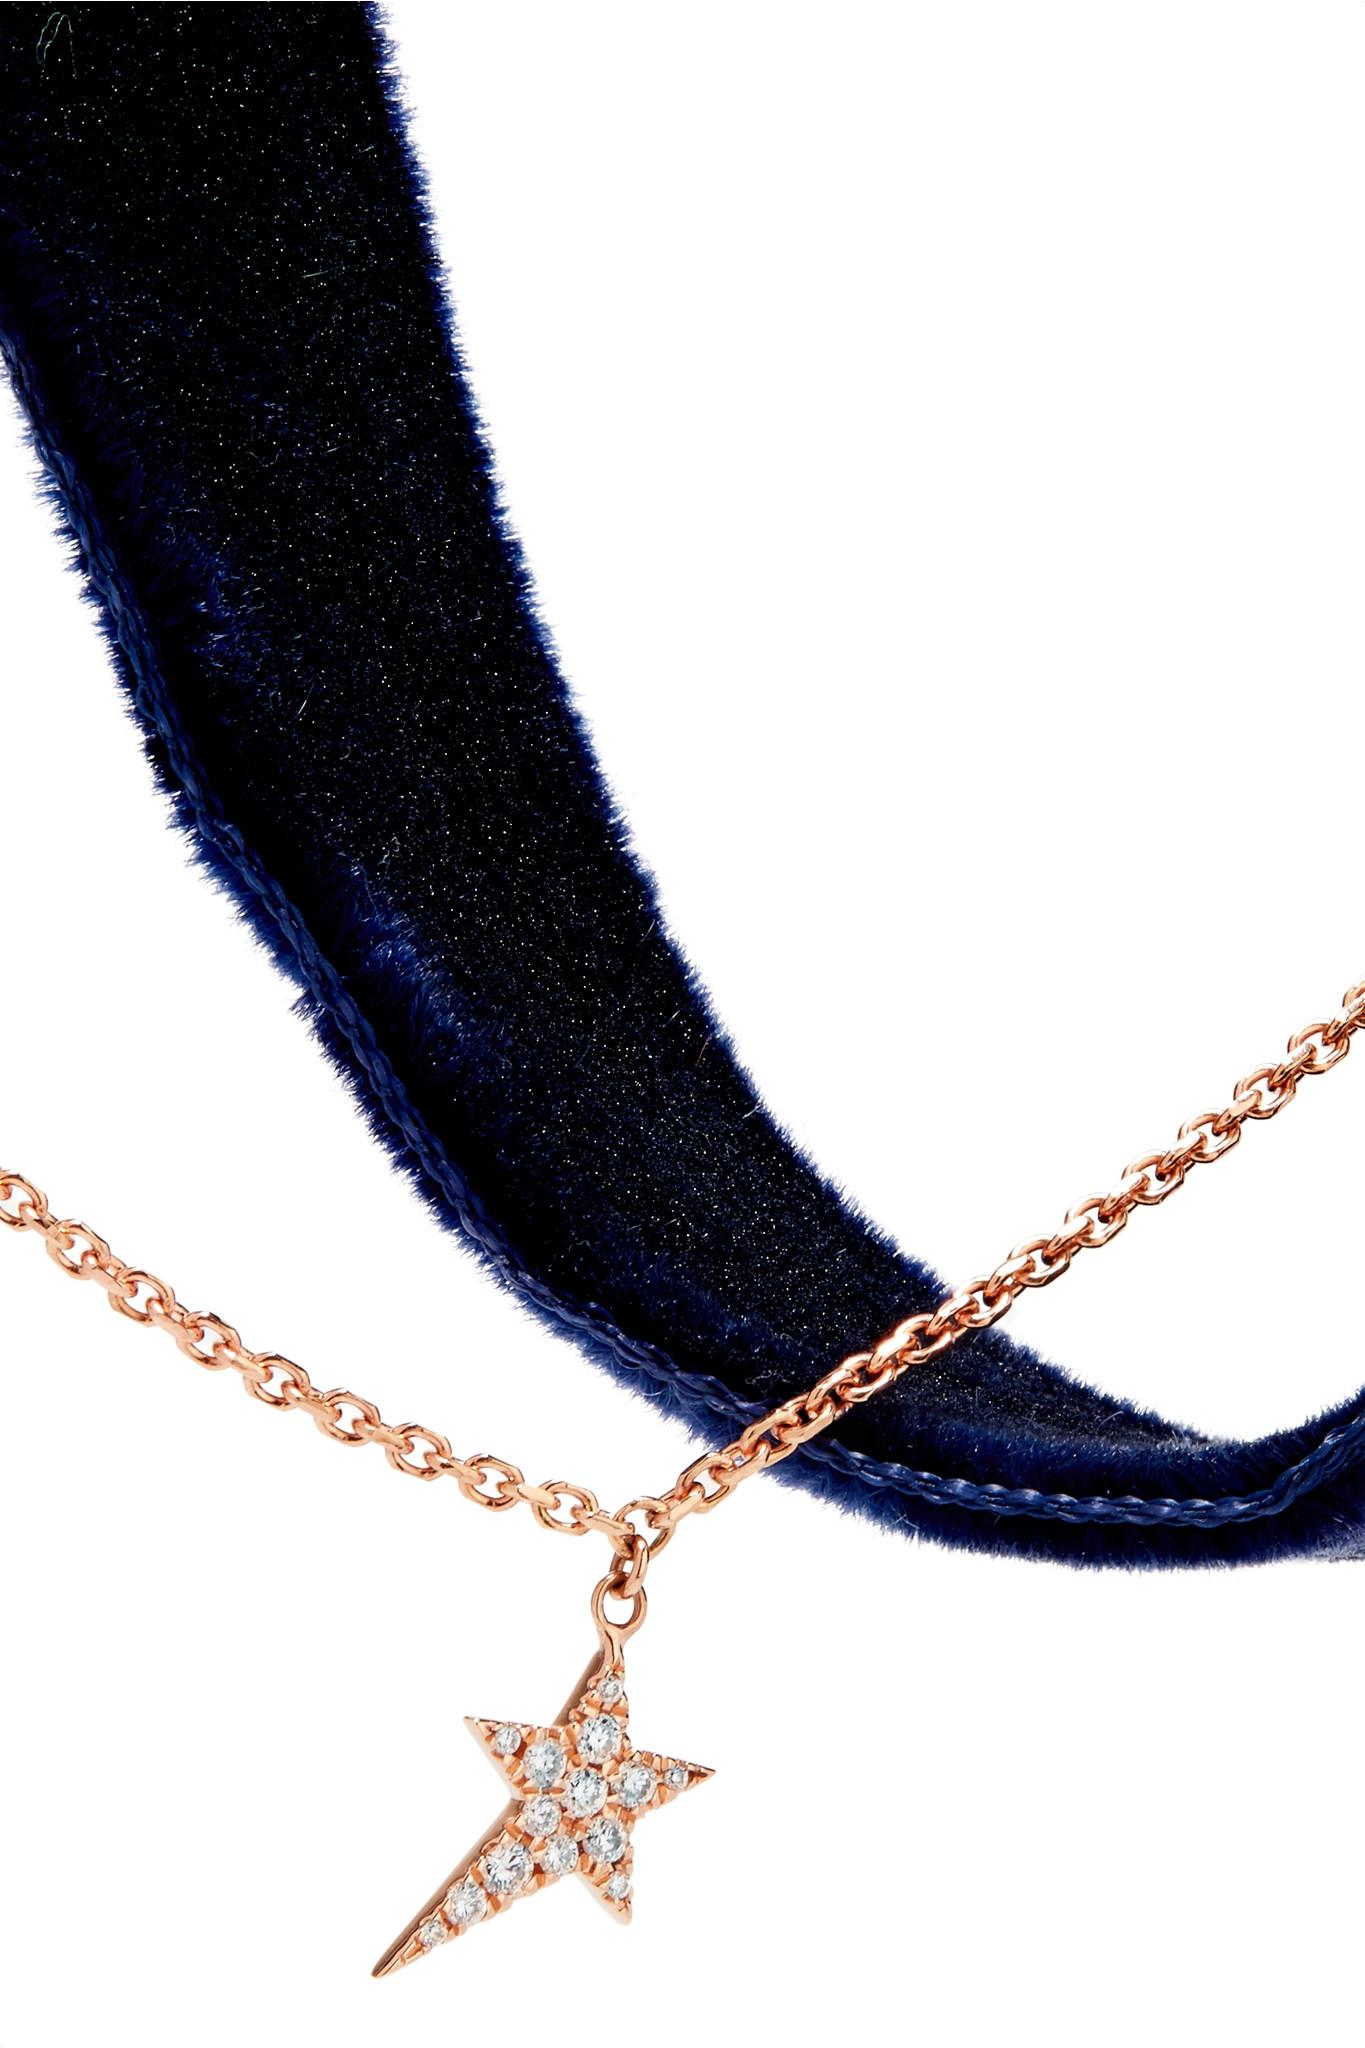 Diane Kordas 18-karat Rose Gold, Velvet And Diamond Choker - Midnight blue